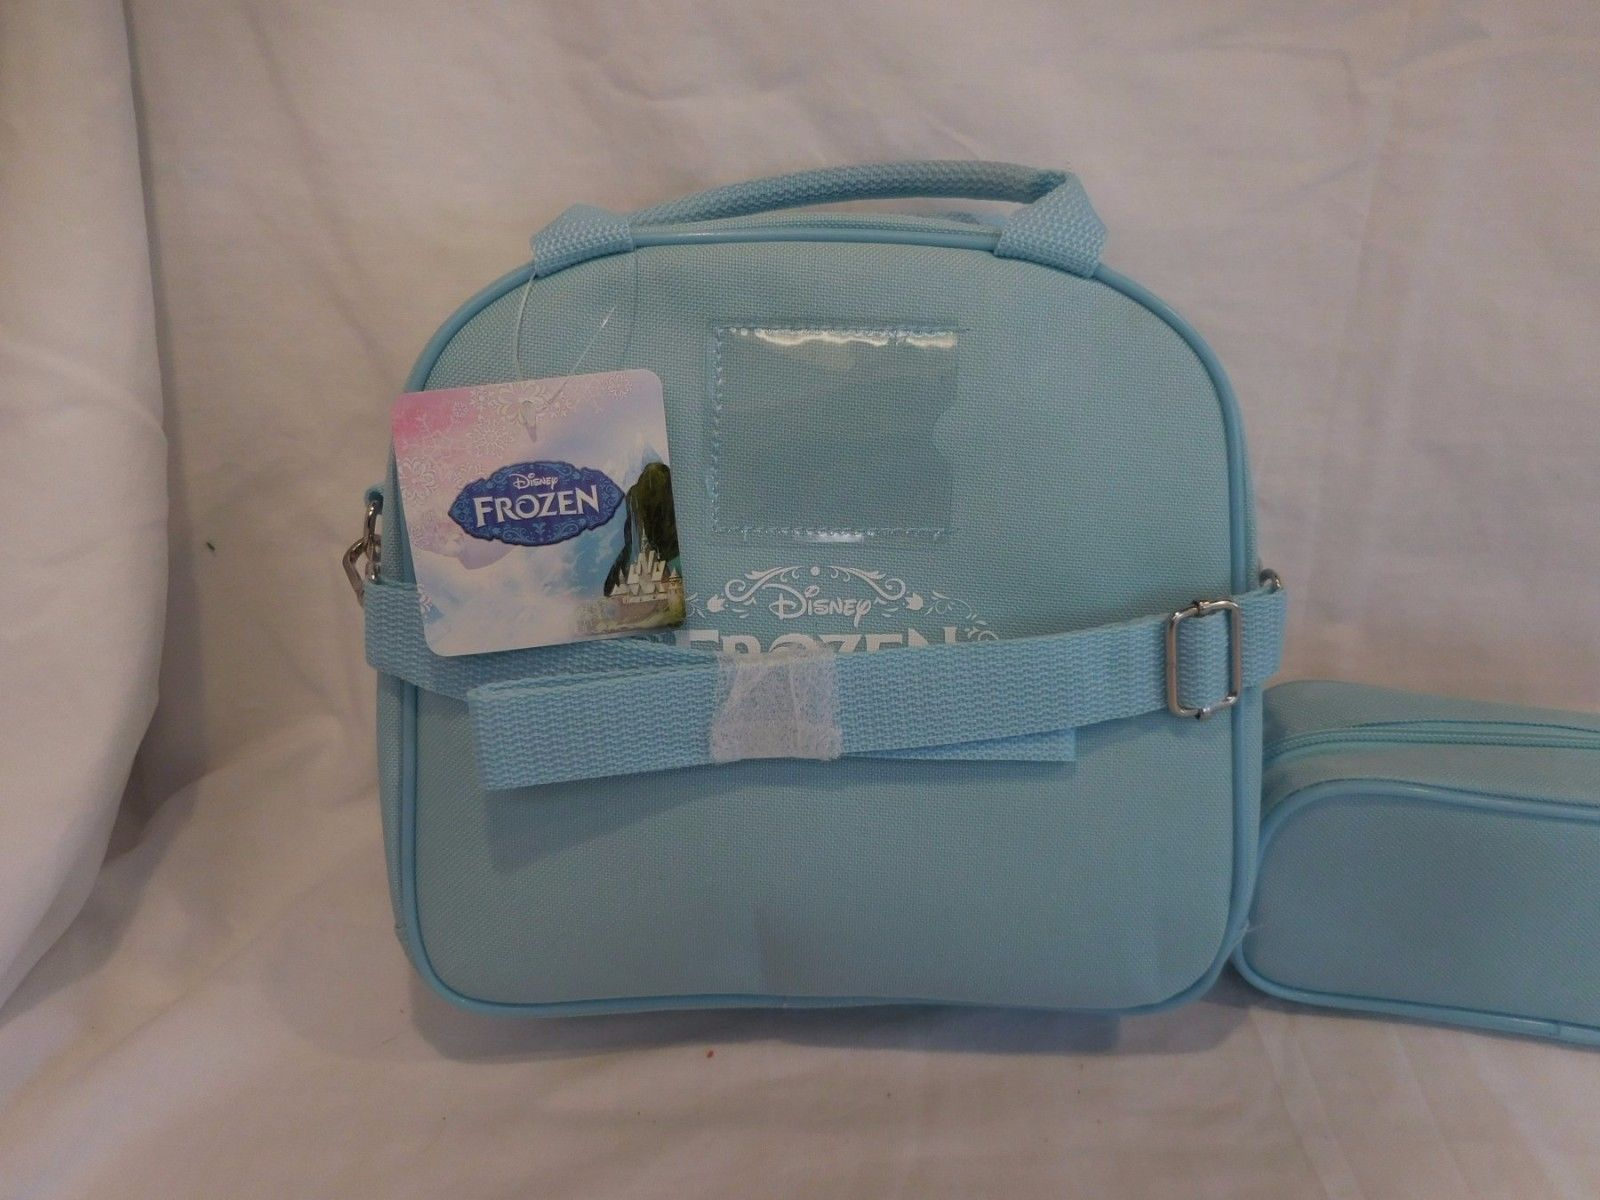 DISNEY'S FROZEN  LUNCH BOX & PENCIL or Make Up Cosmetic Pochette CASE SET!  NWT